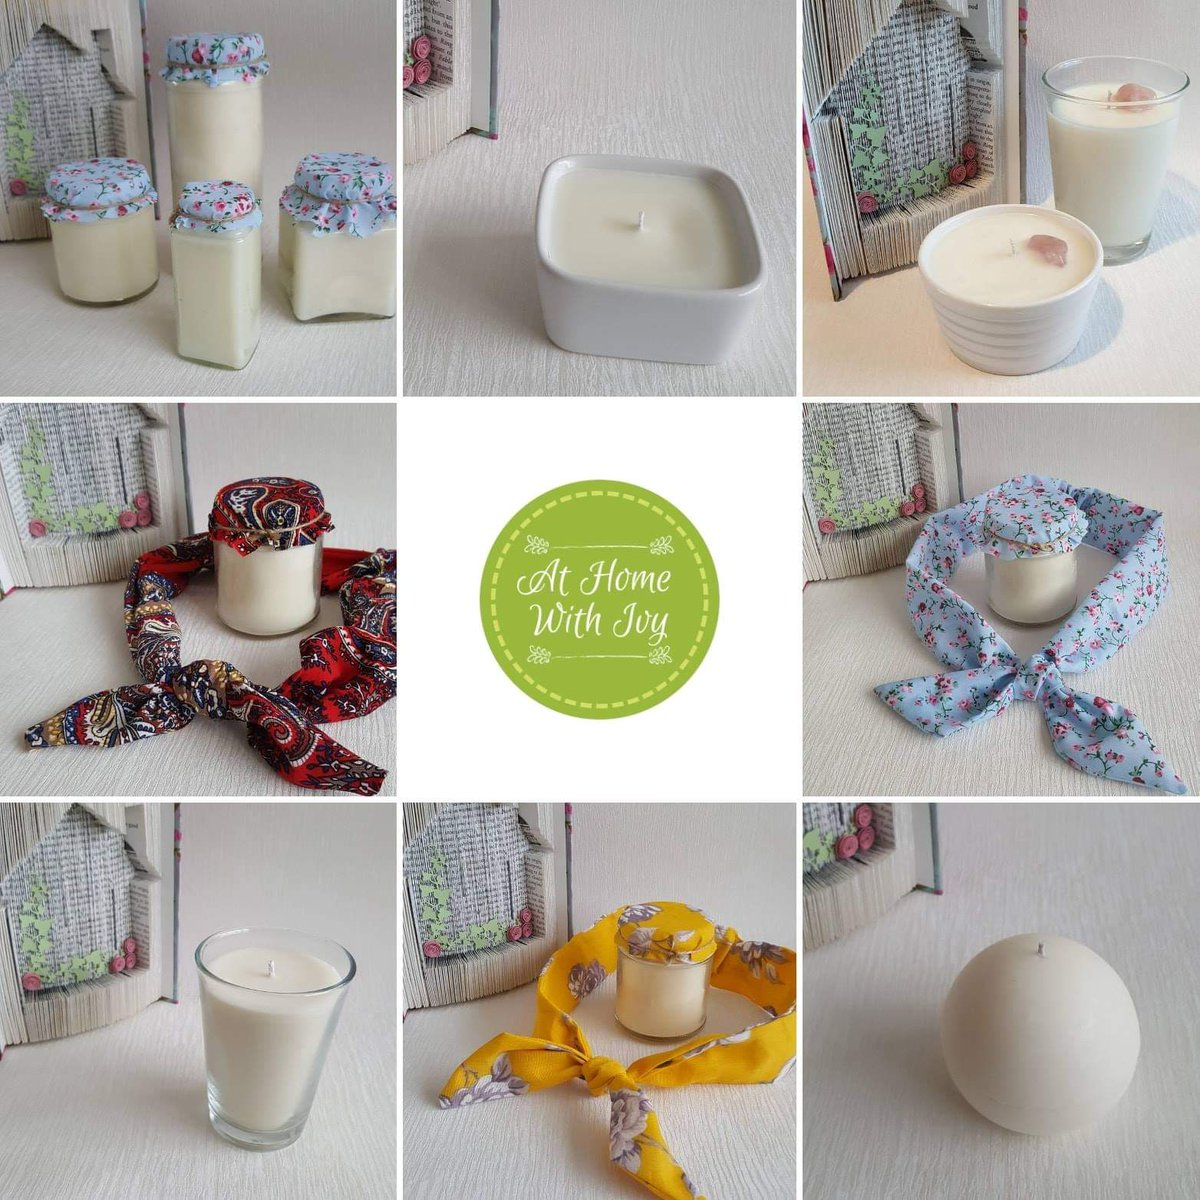 So chuffed with how our candle range is looking now!   Don&#39;t forget it&#39;s still 20% off over on our etsy shop! Just use the code MOTHERSDAY20 at checkout.  #etsyuk #handmade #giftideas #UkGiftHour #UKSmallBiz #mothersdaygift<br>http://pic.twitter.com/9EVmiV19Ro